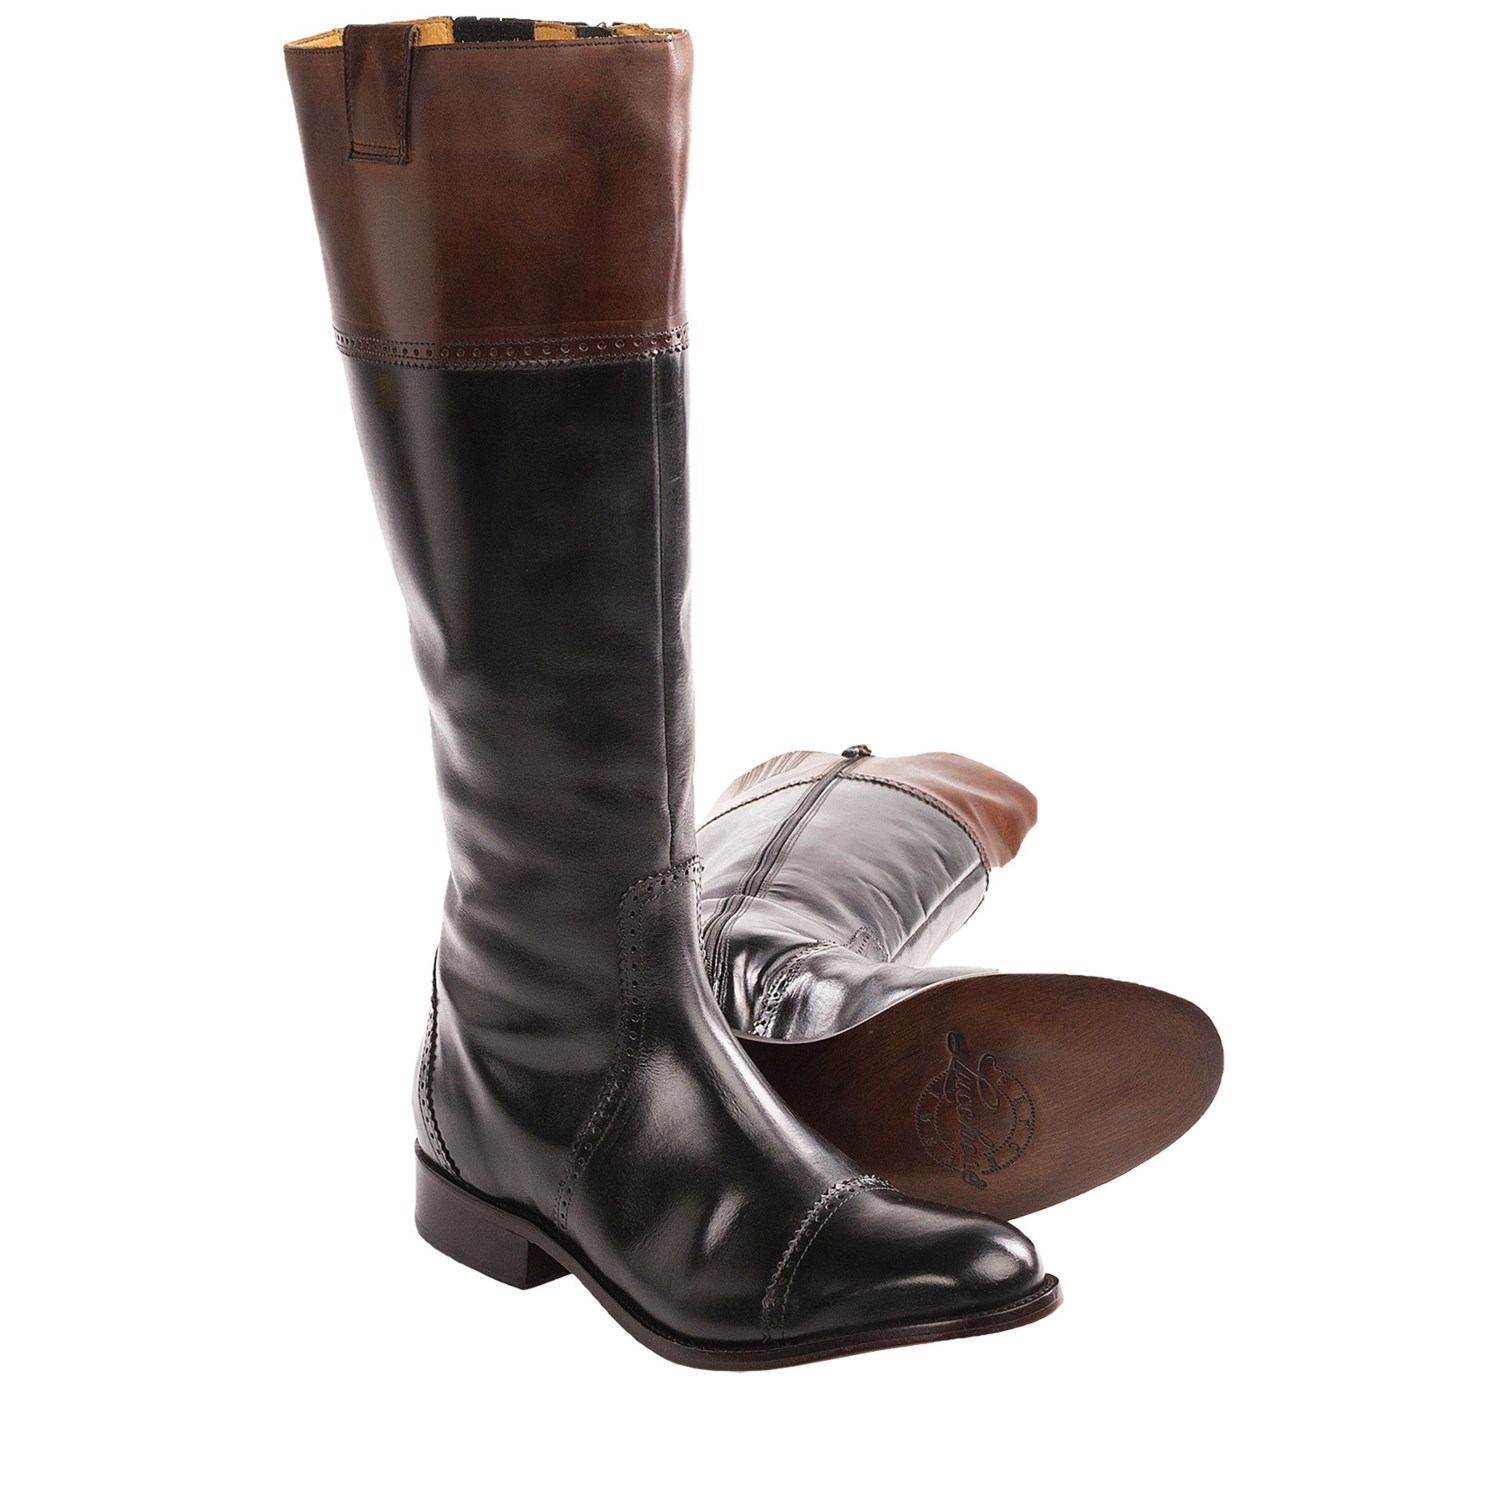 Lucchese Collared English Riding Boots Leather For Women